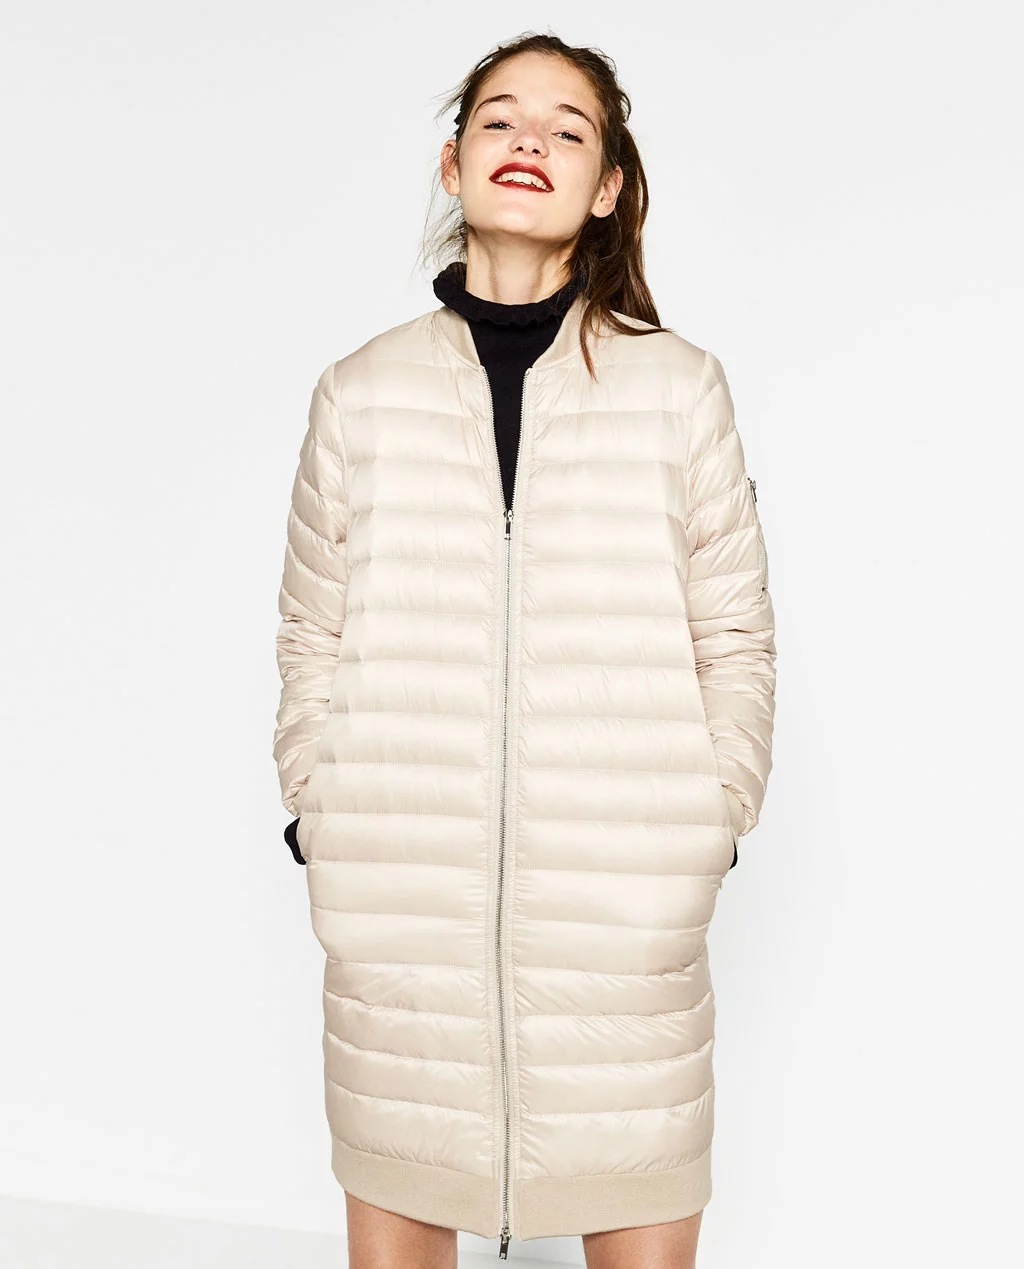 Womens Winter Jackets And Coats White Duck Ultra Light ...